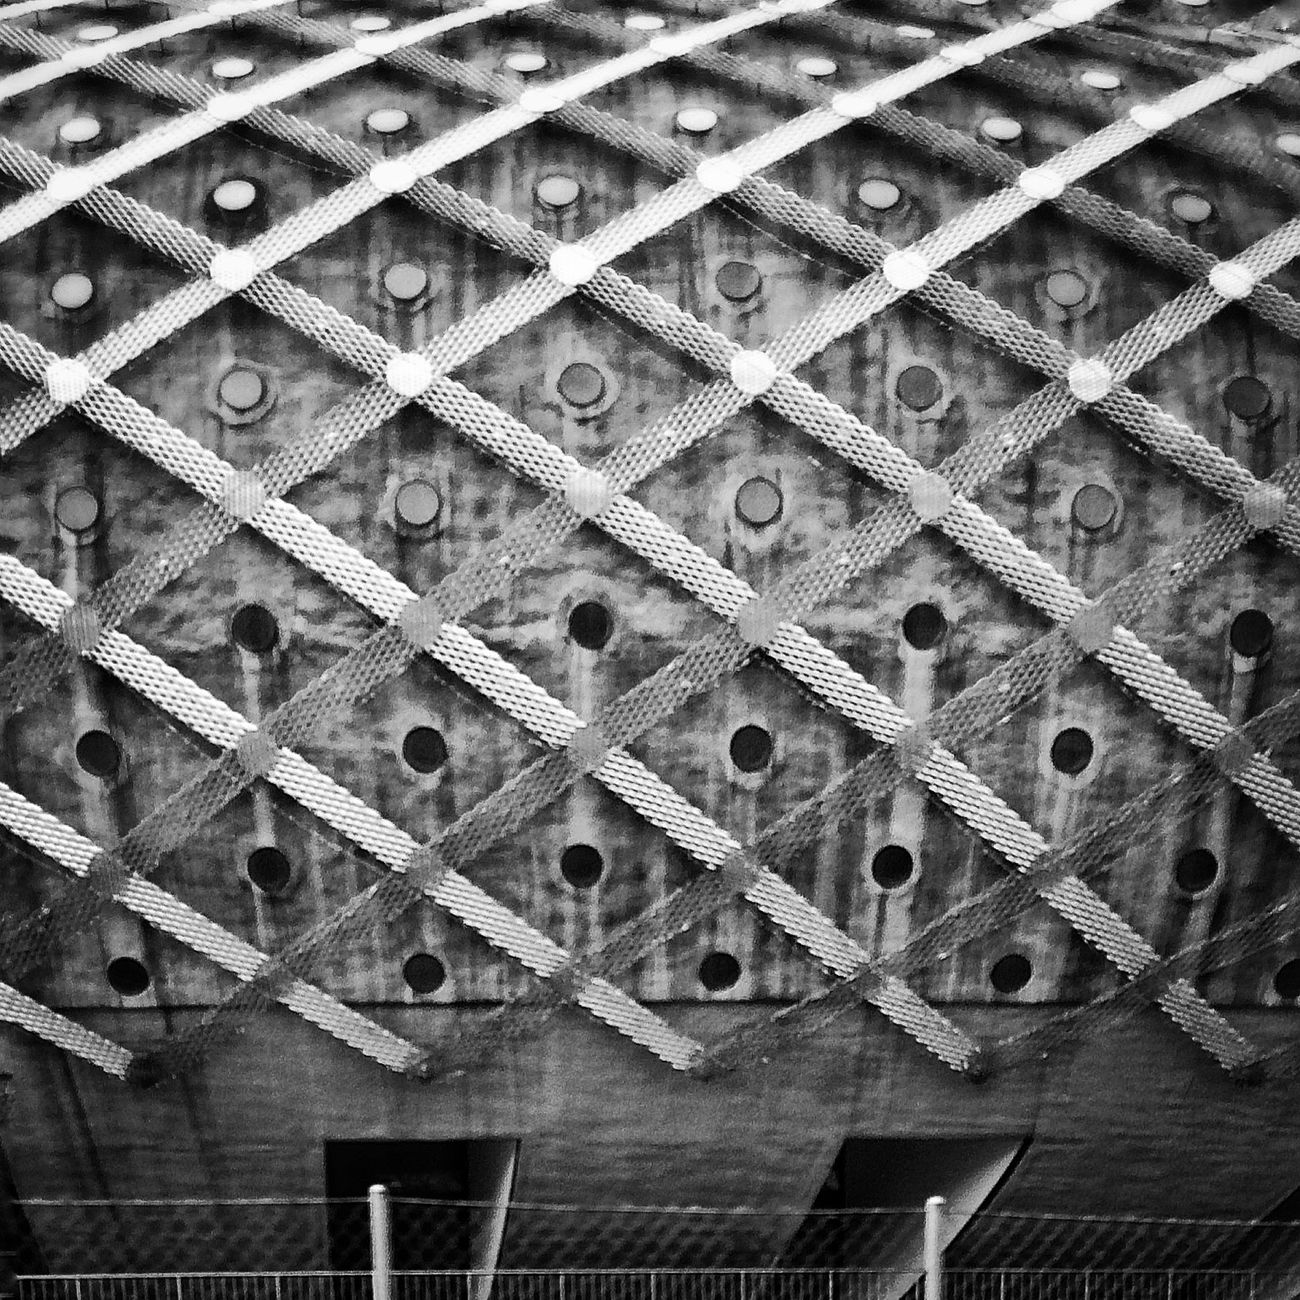 Brutal_architecture Blackandwhite Photography Urbanexploration